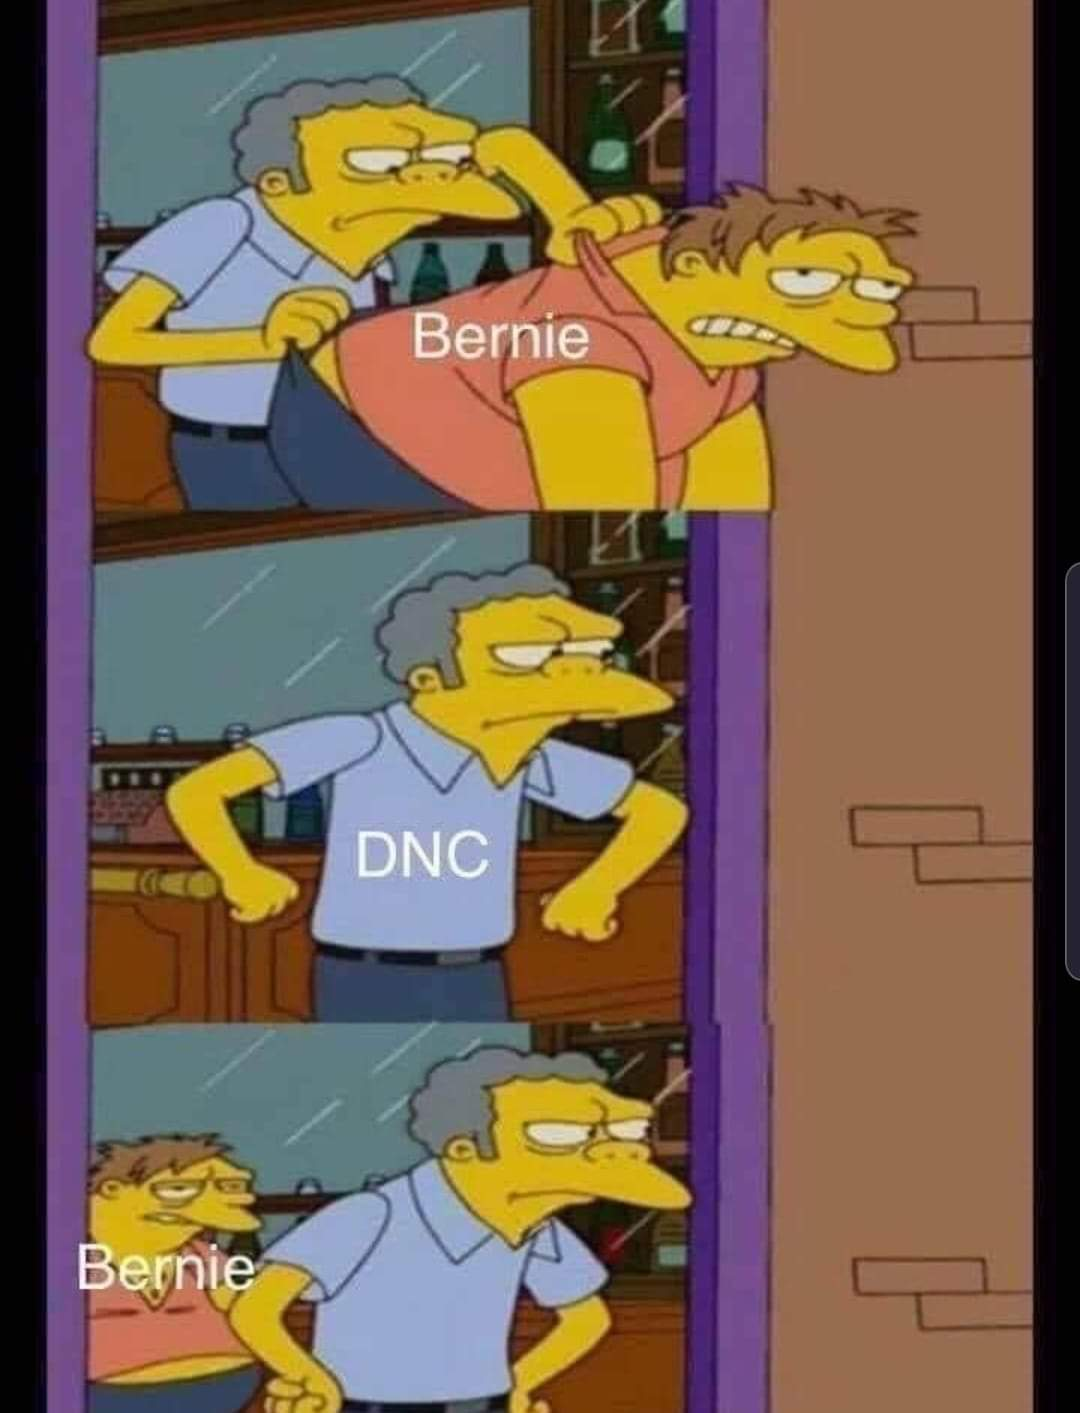 https://cdn.discordapp.com/attachments/604701560580341771/679611857493032960/bernie_dnc.jpg